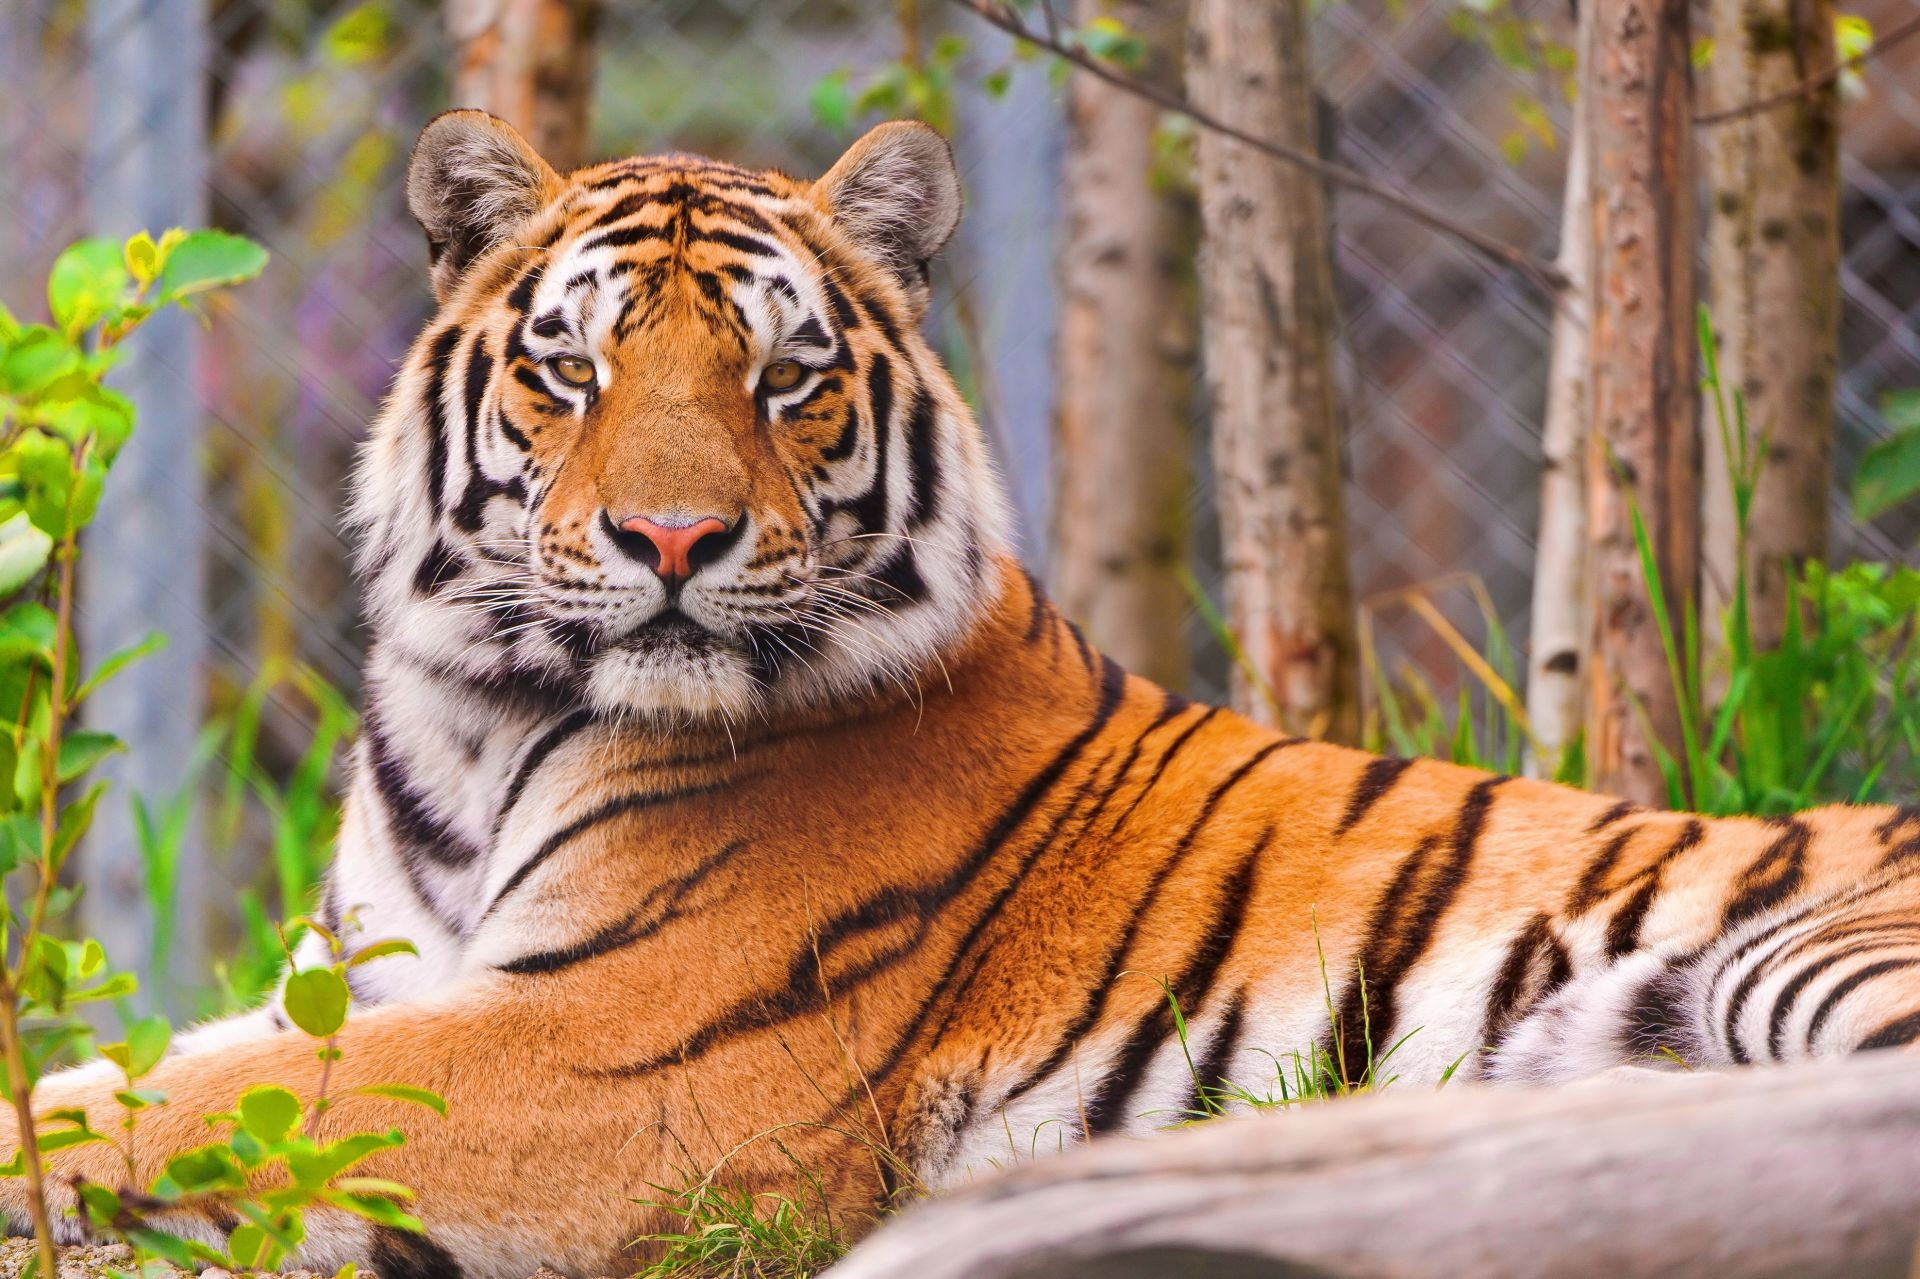 is the Tiger striped face handsome looks